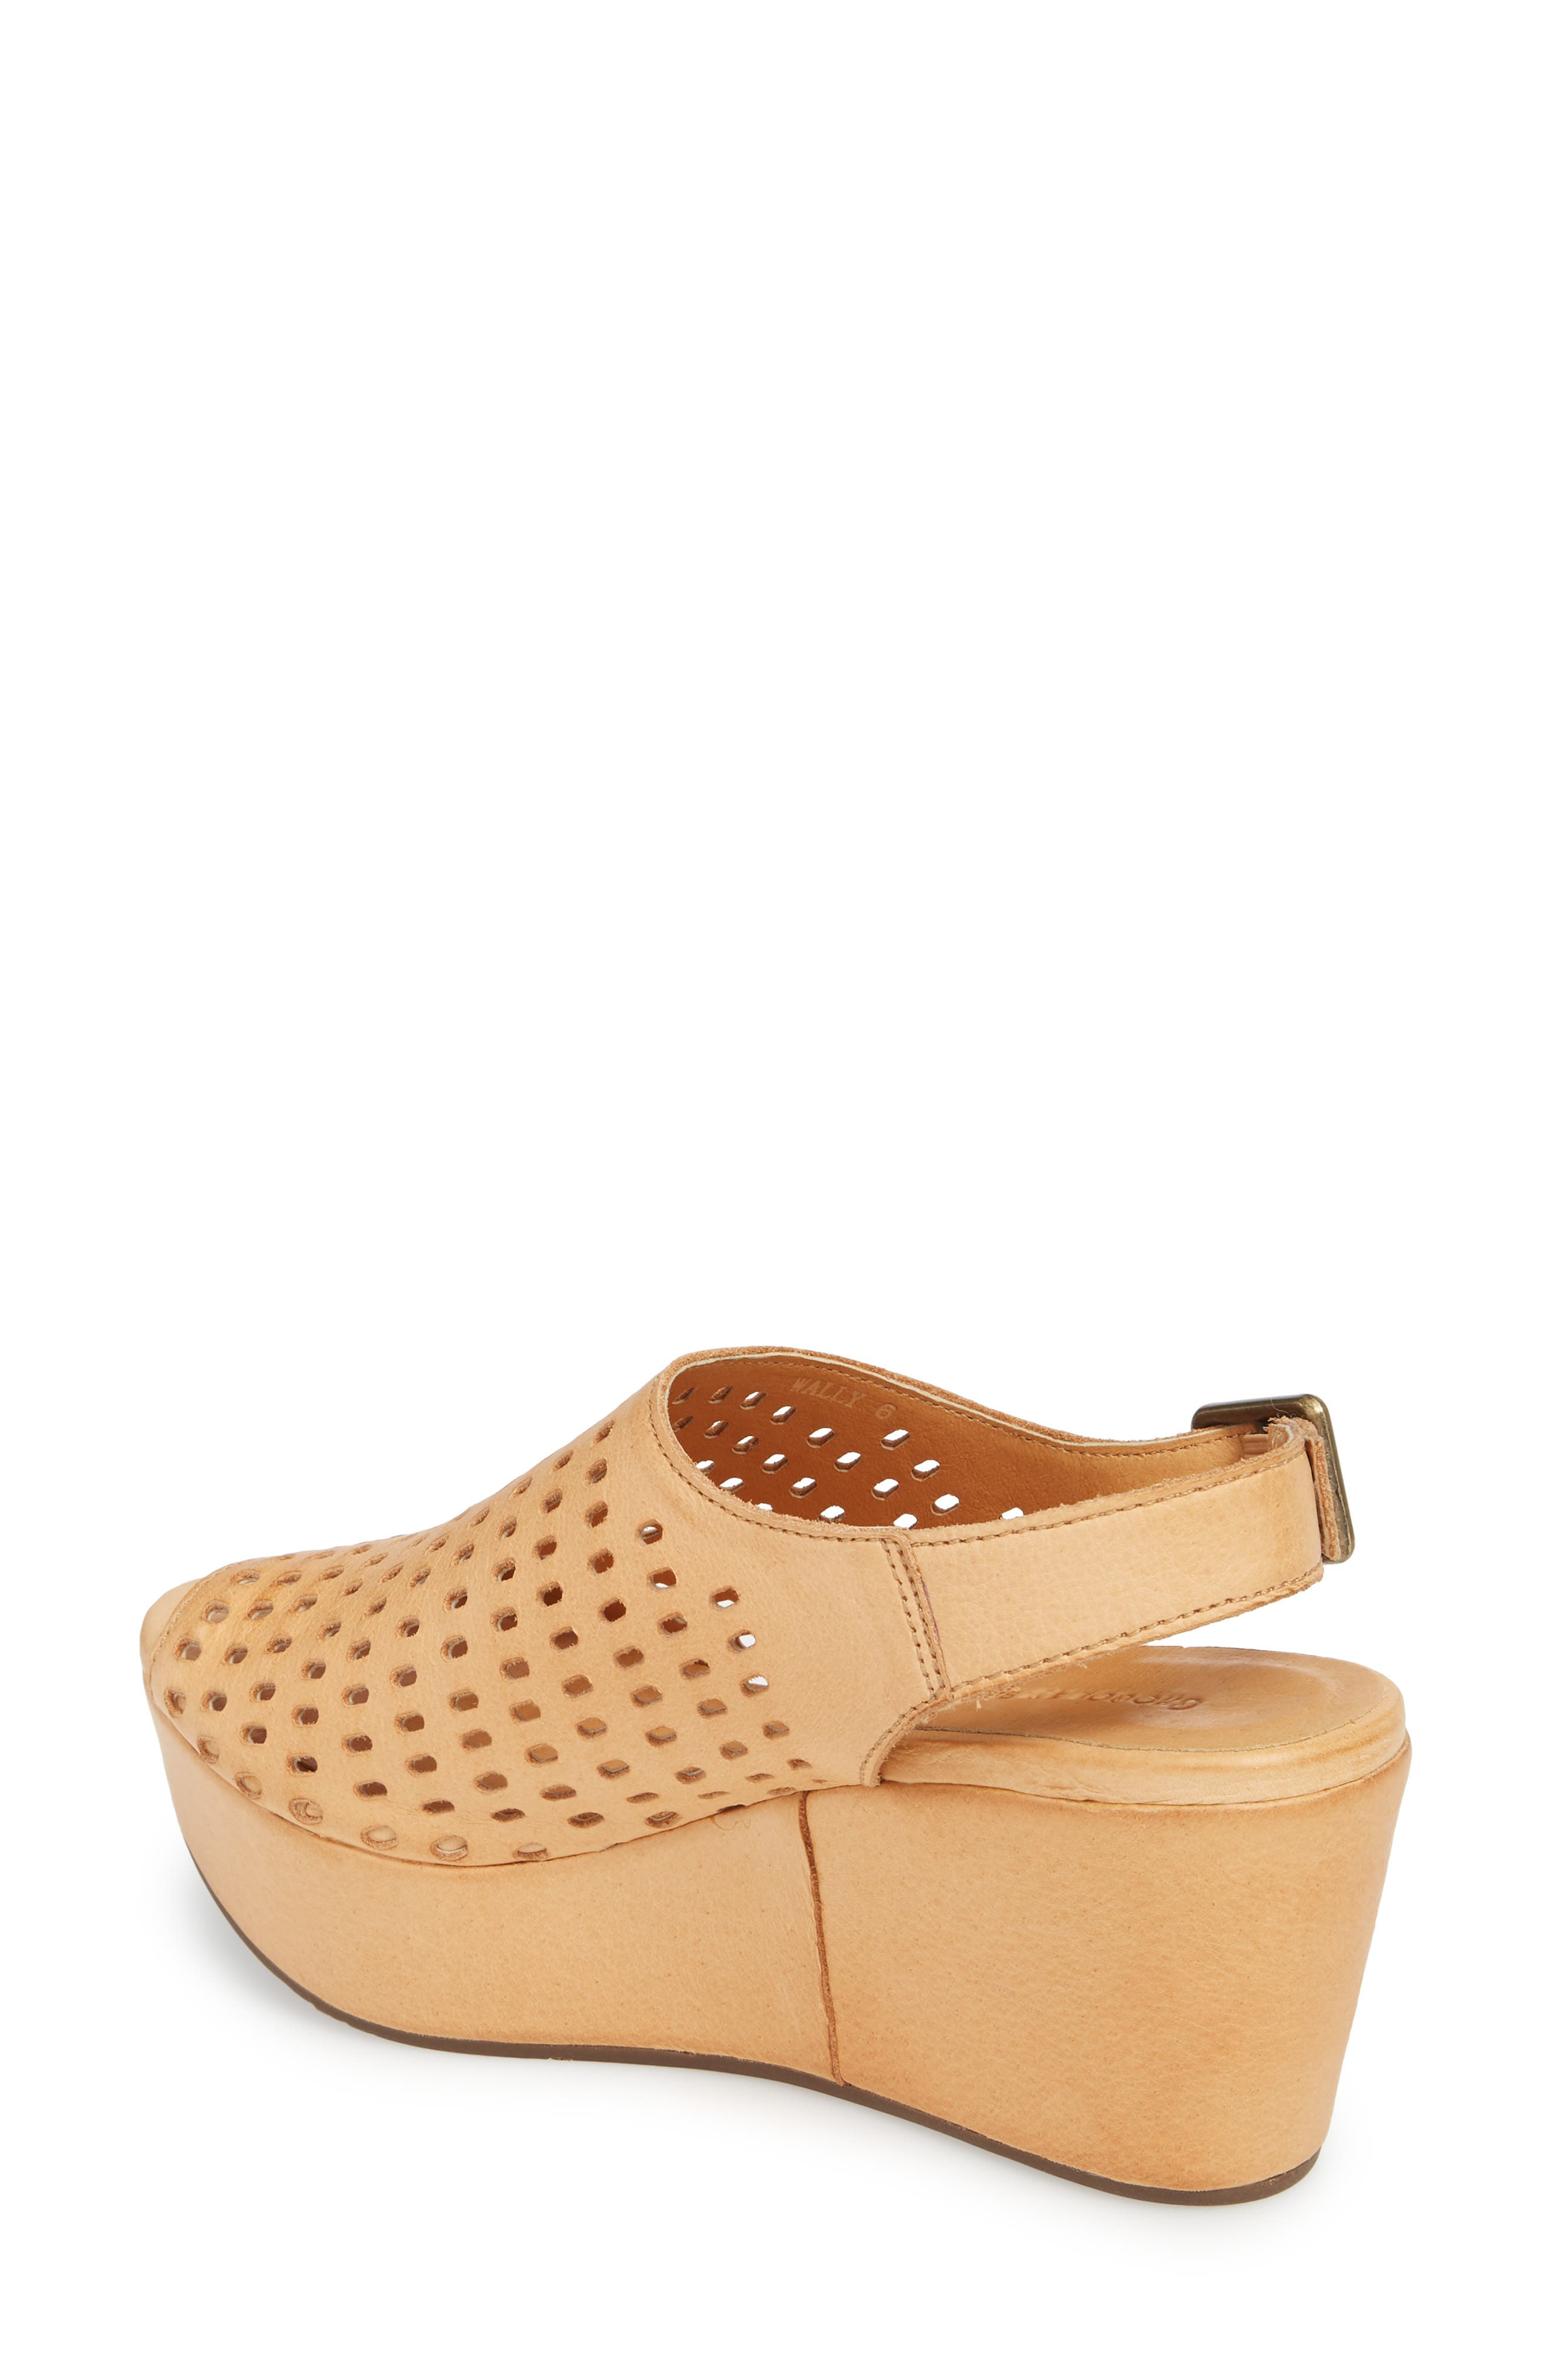 Wally Platform Wedge Sandal,                             Alternate thumbnail 2, color,                             Tan Leather